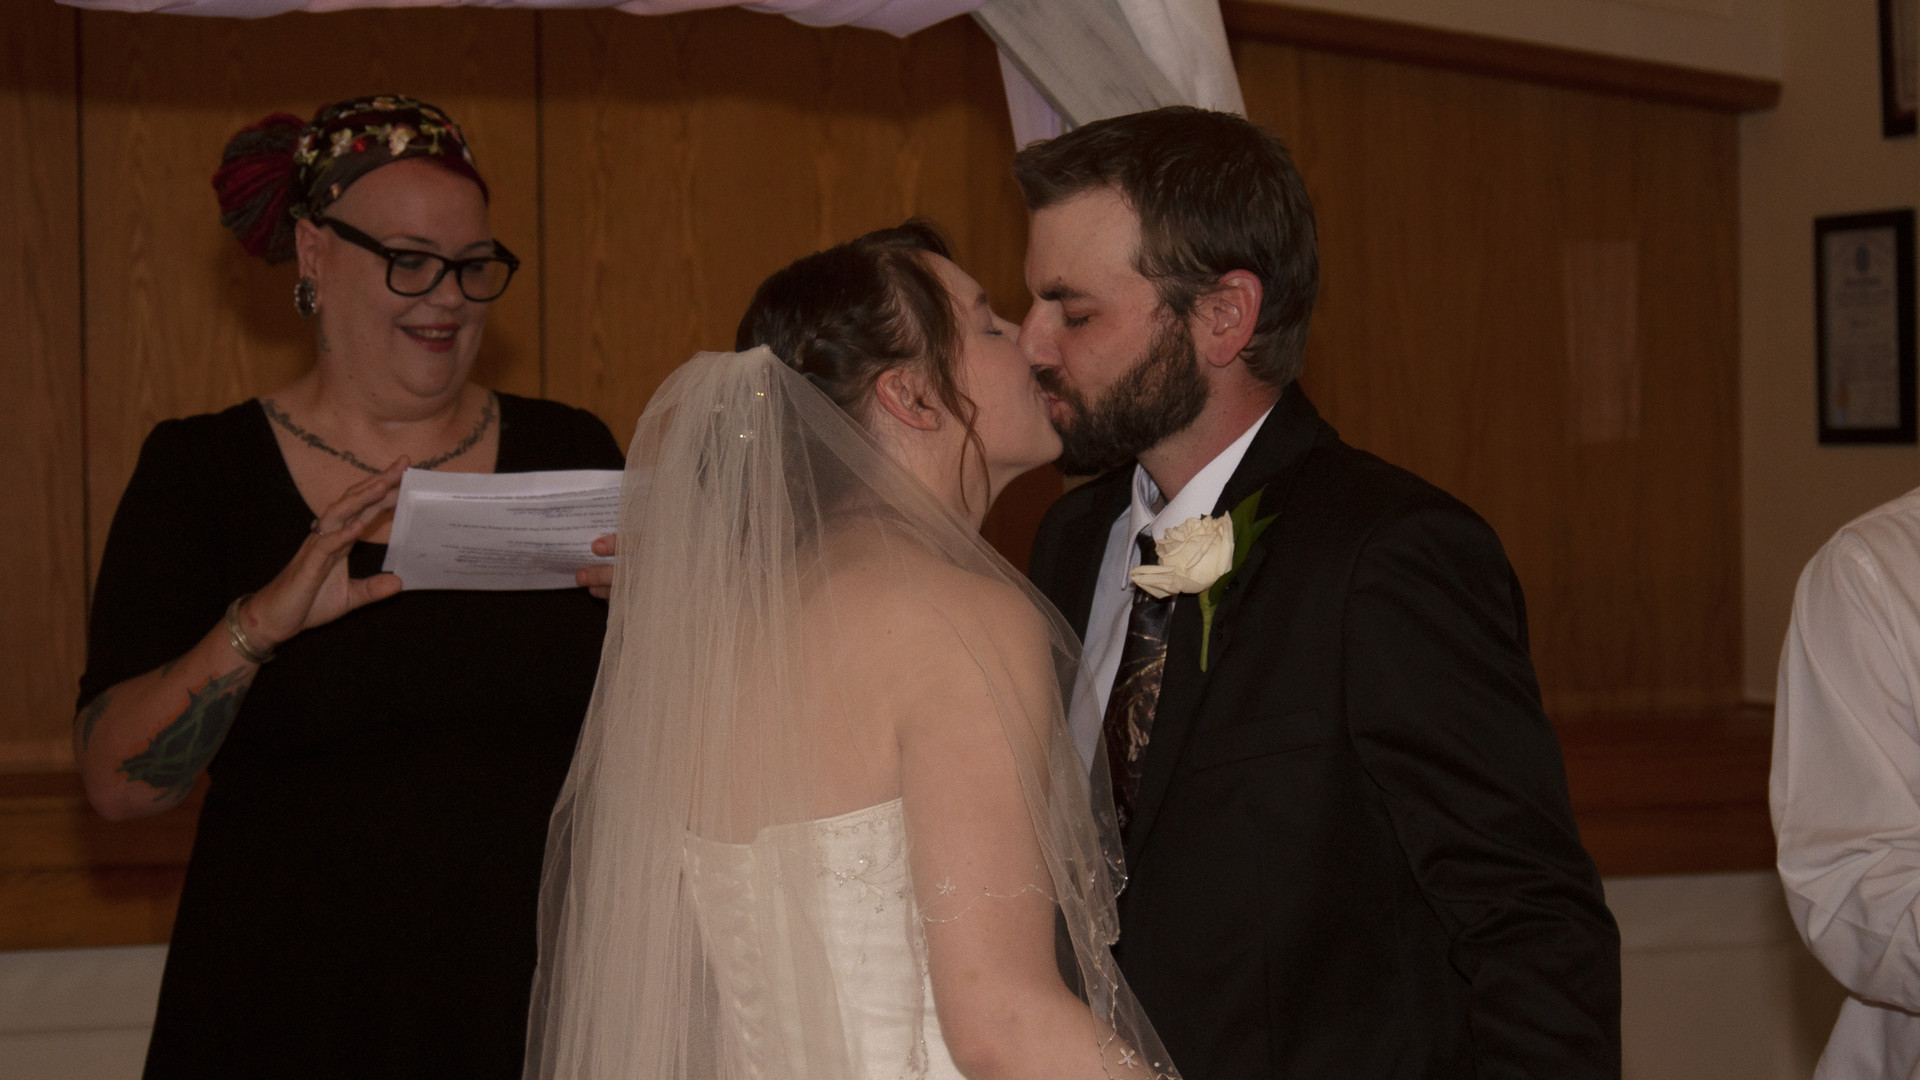 Mr. and Mrs. first kiss